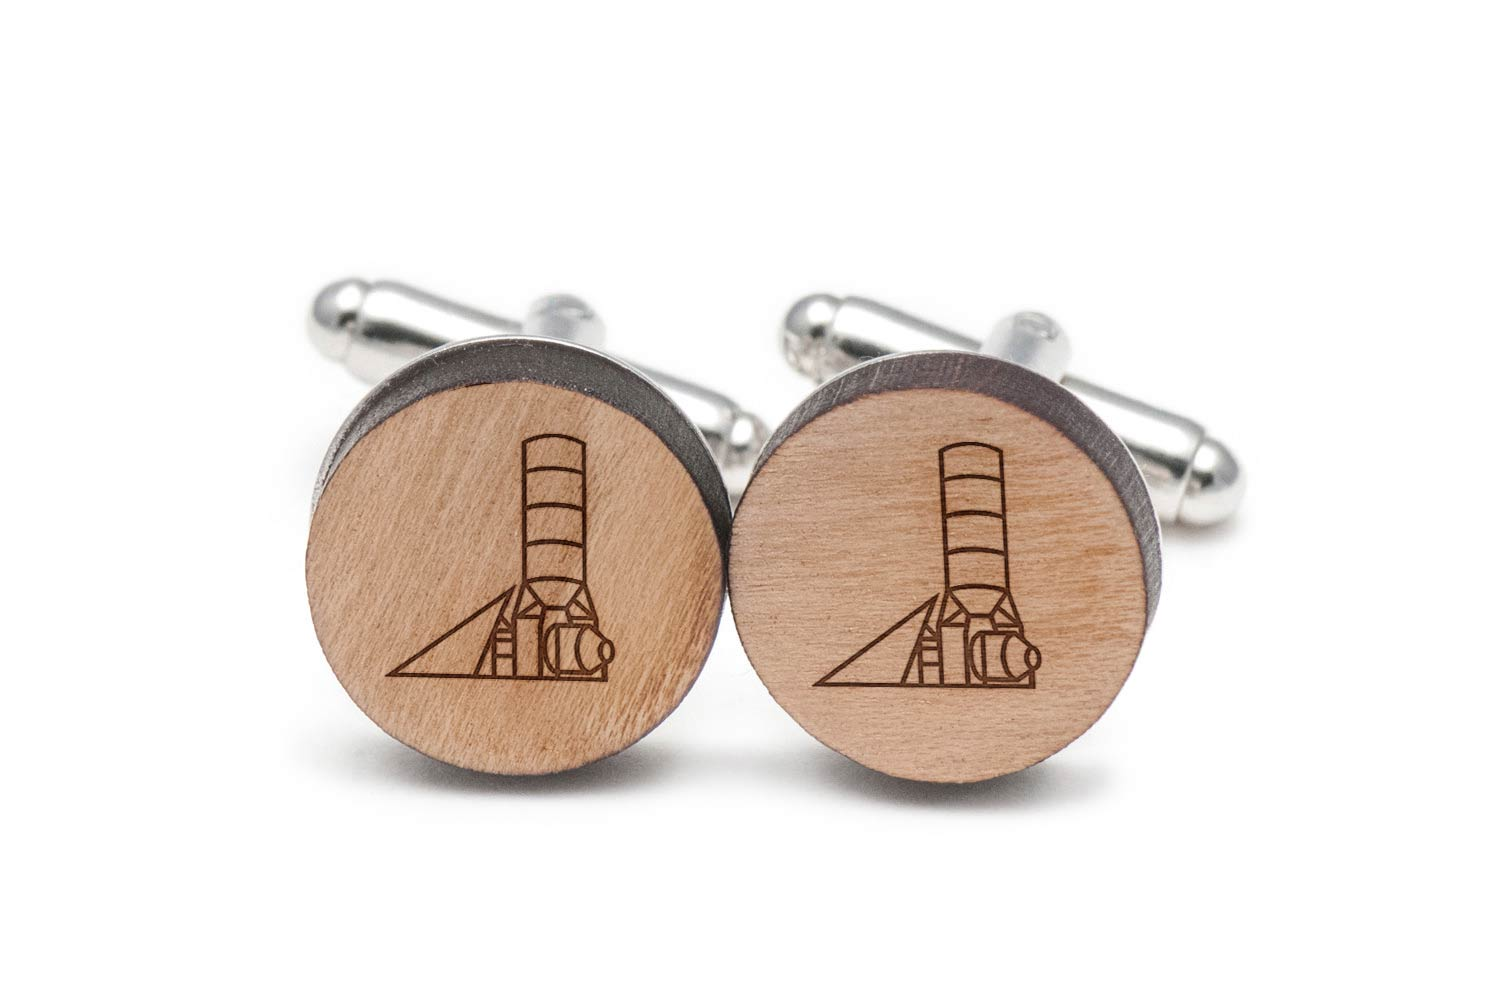 Concrete Mixer Plant Cufflinks, Wood Cufflinks Hand Made in the USA by BigSpool Distributors